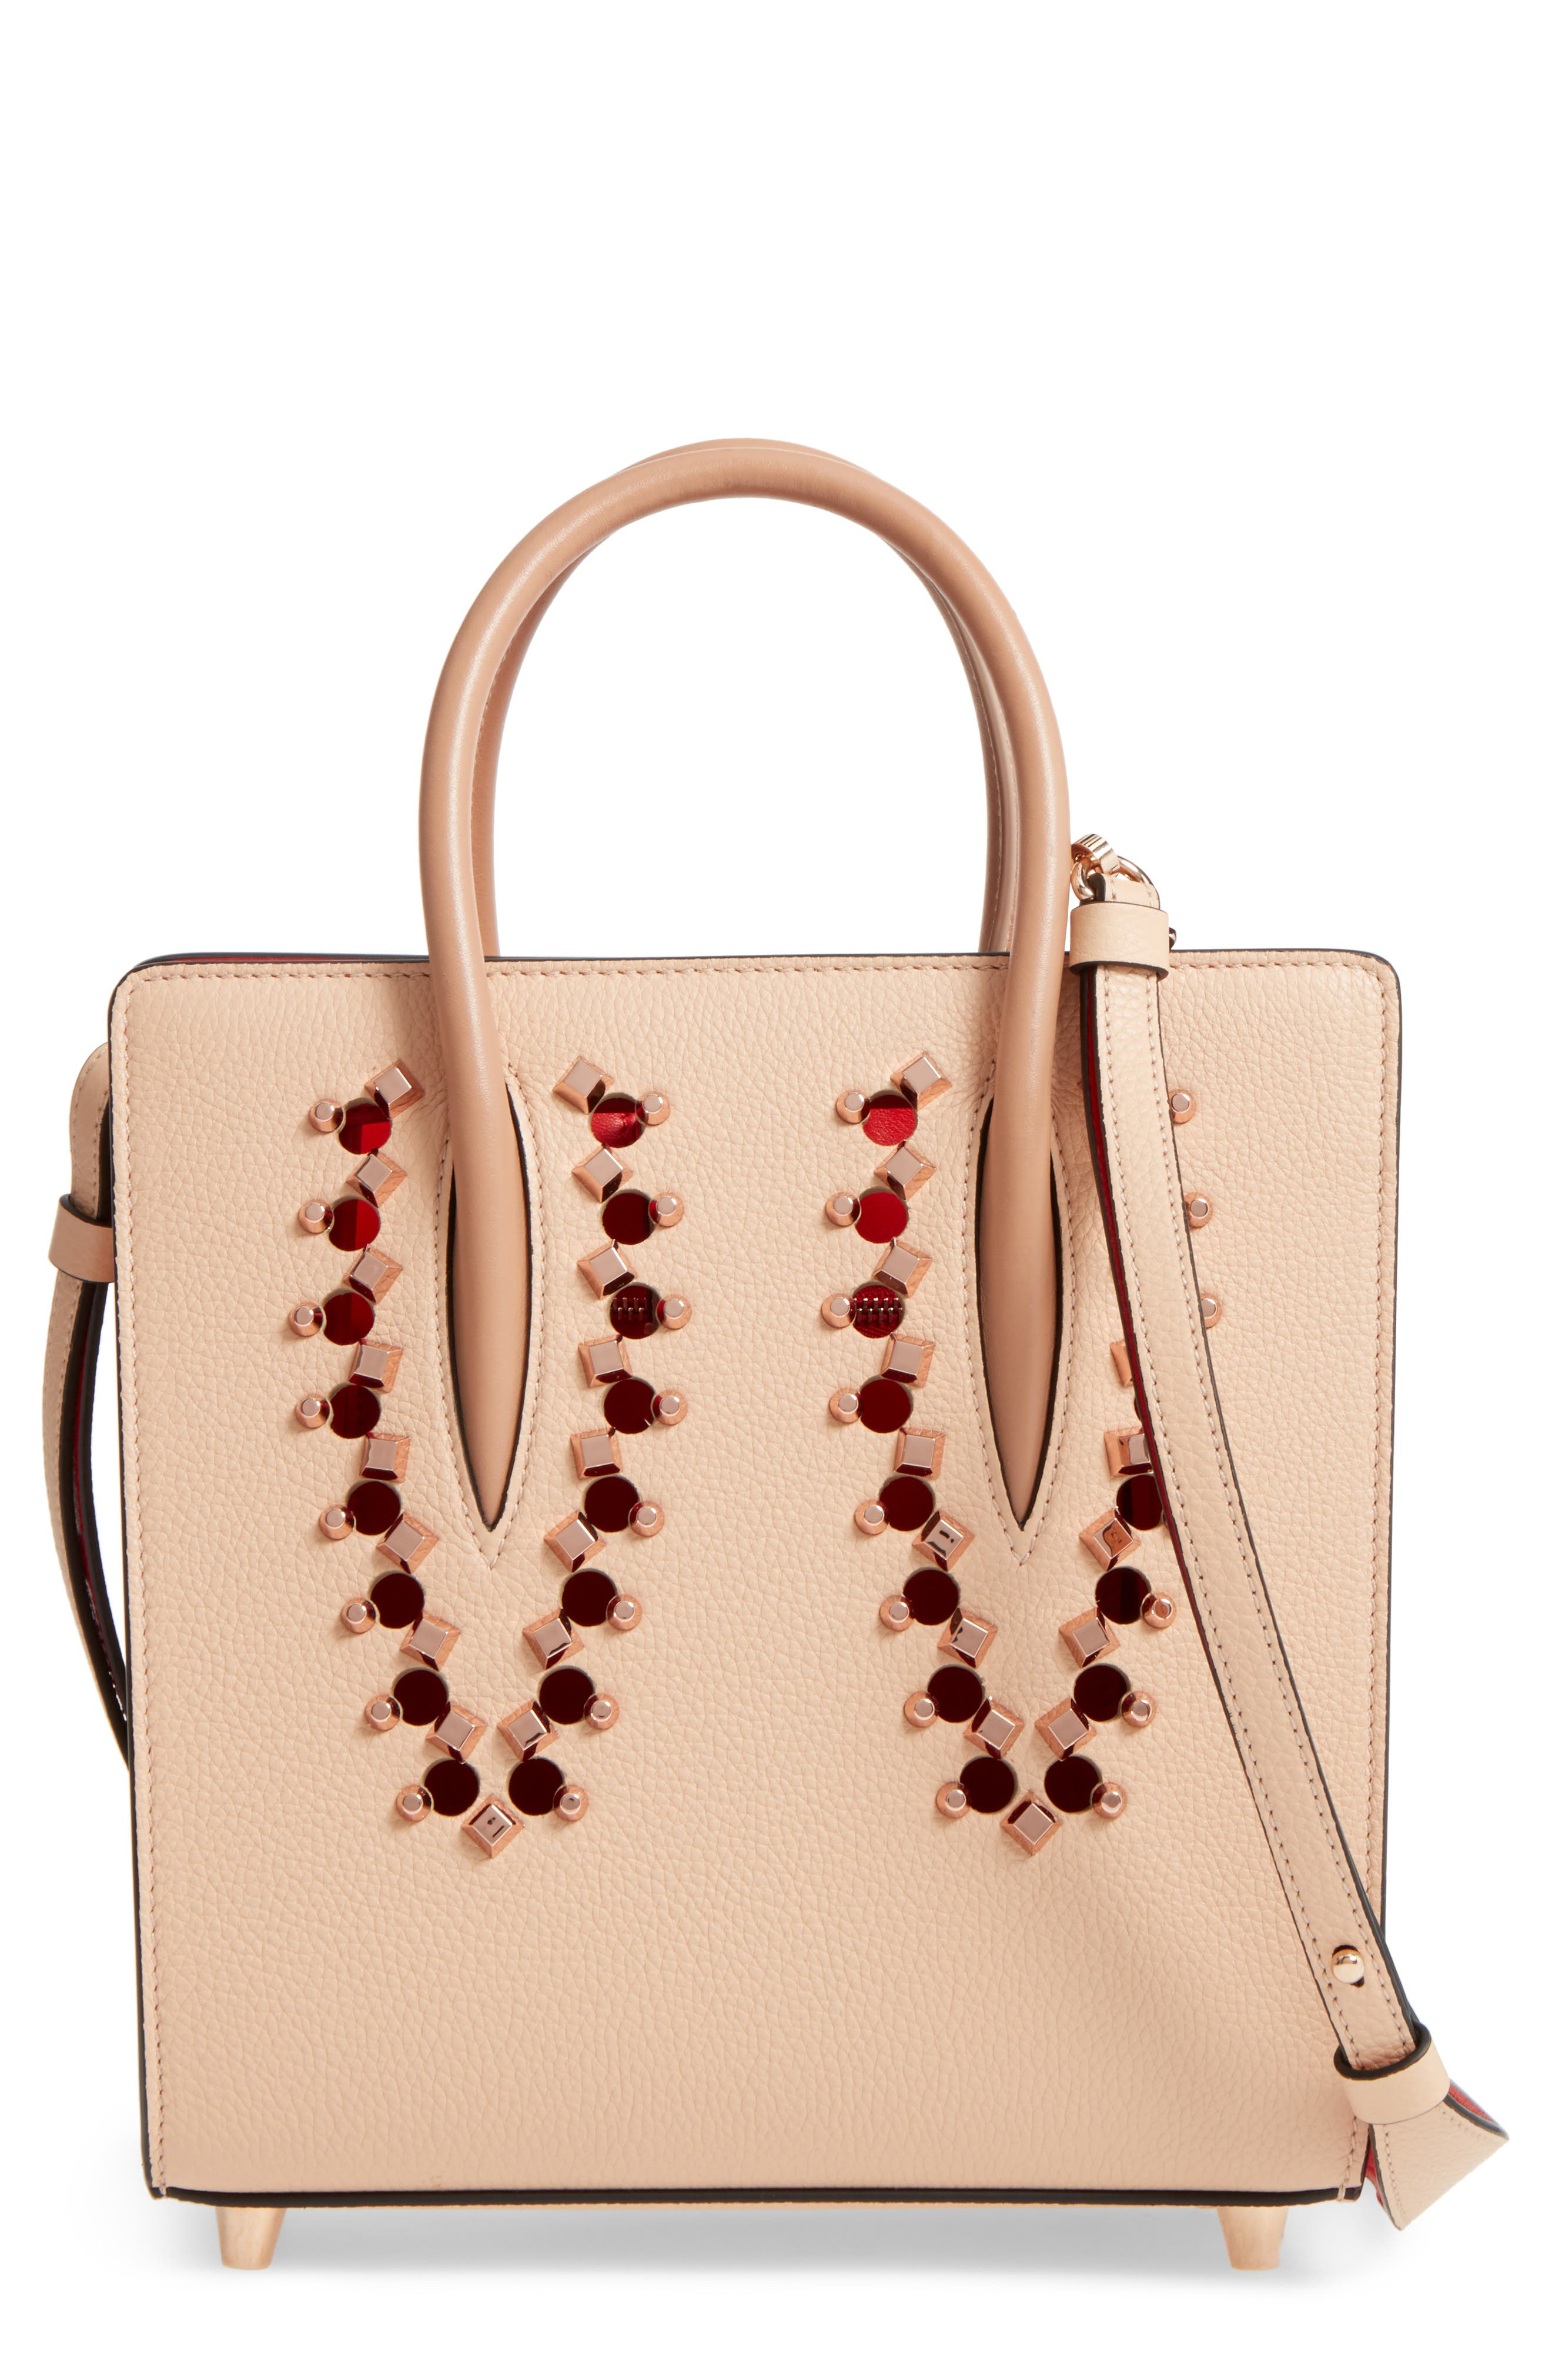 Small Paloma Empire Leather Tote,                         Main,                         color, Naturel/ Rose Gold